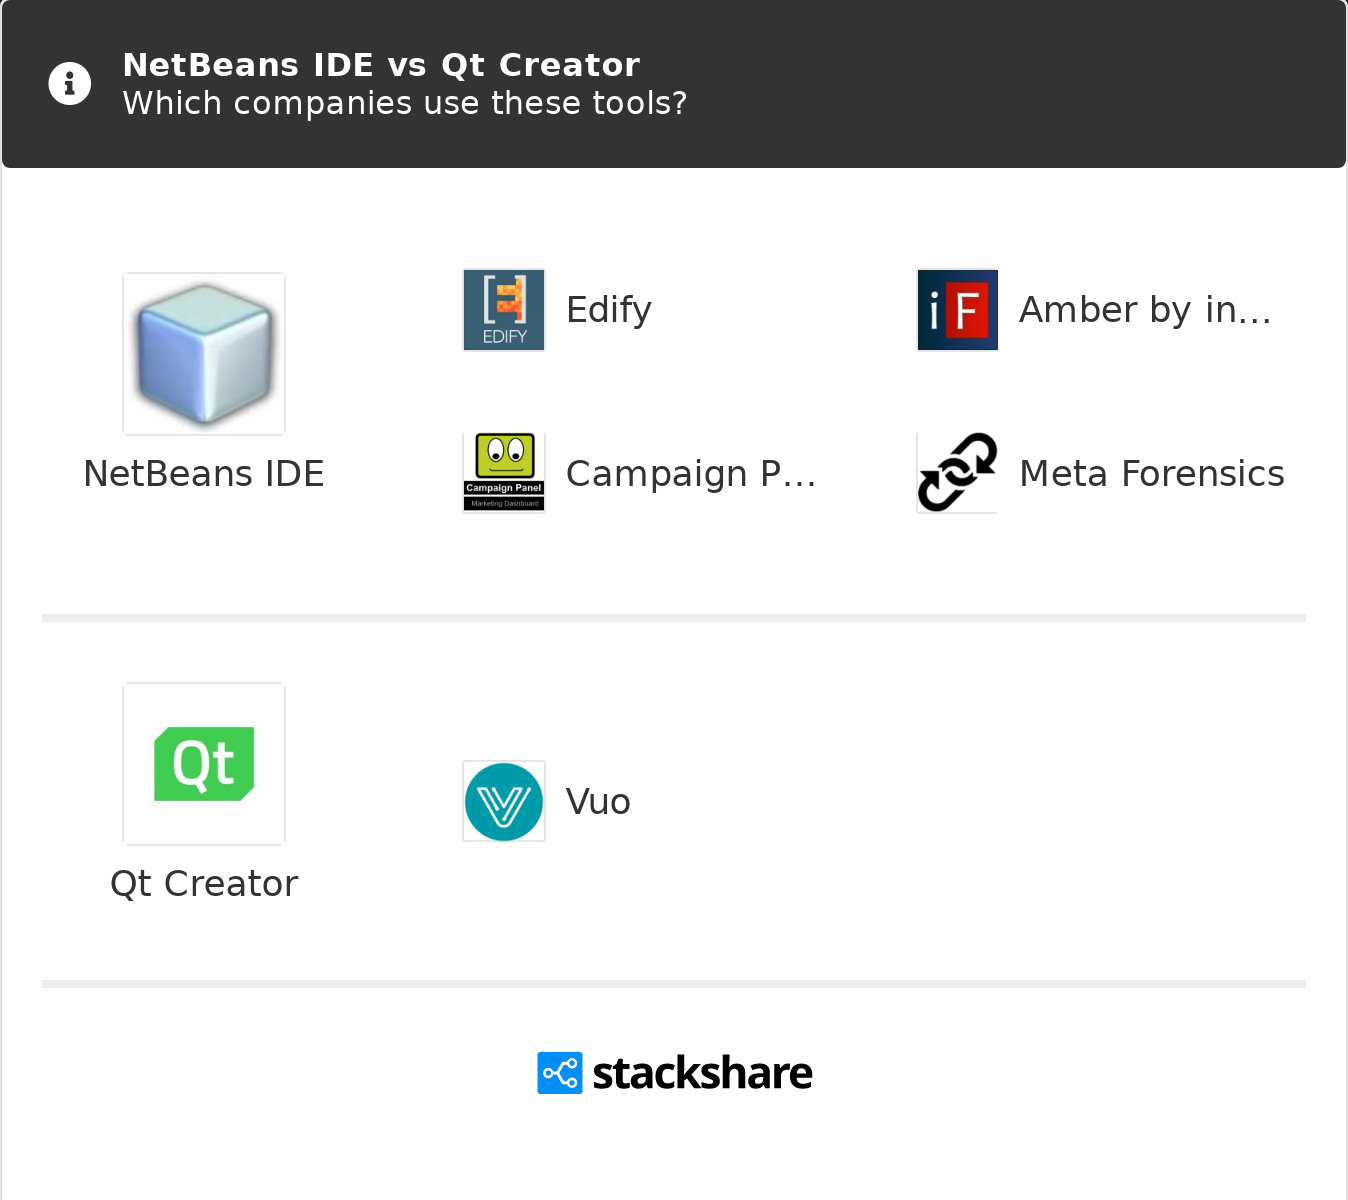 Netbeans Ide Vs Qt Creator What Are The Differences